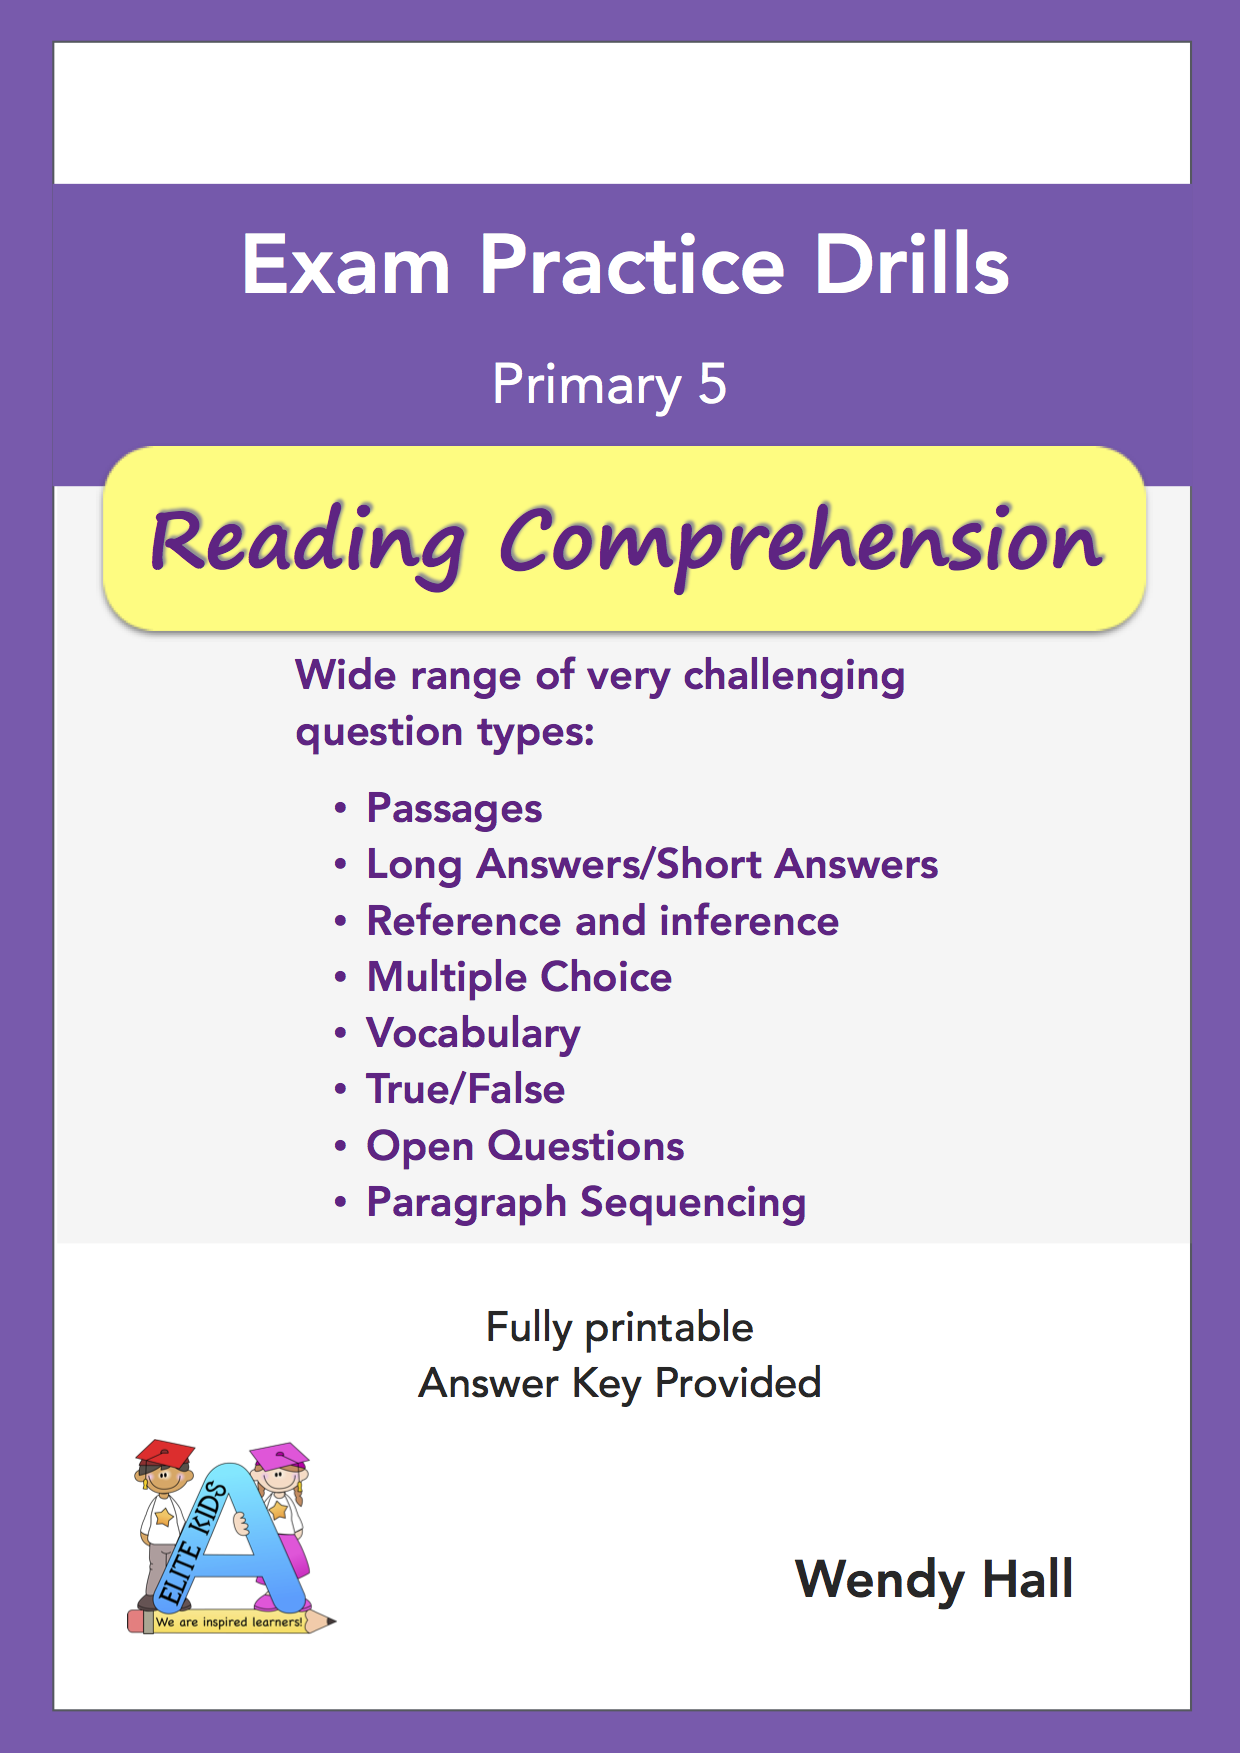 Elite Kids | Exam Practice Drills - Reading Comprehension - Primary 5